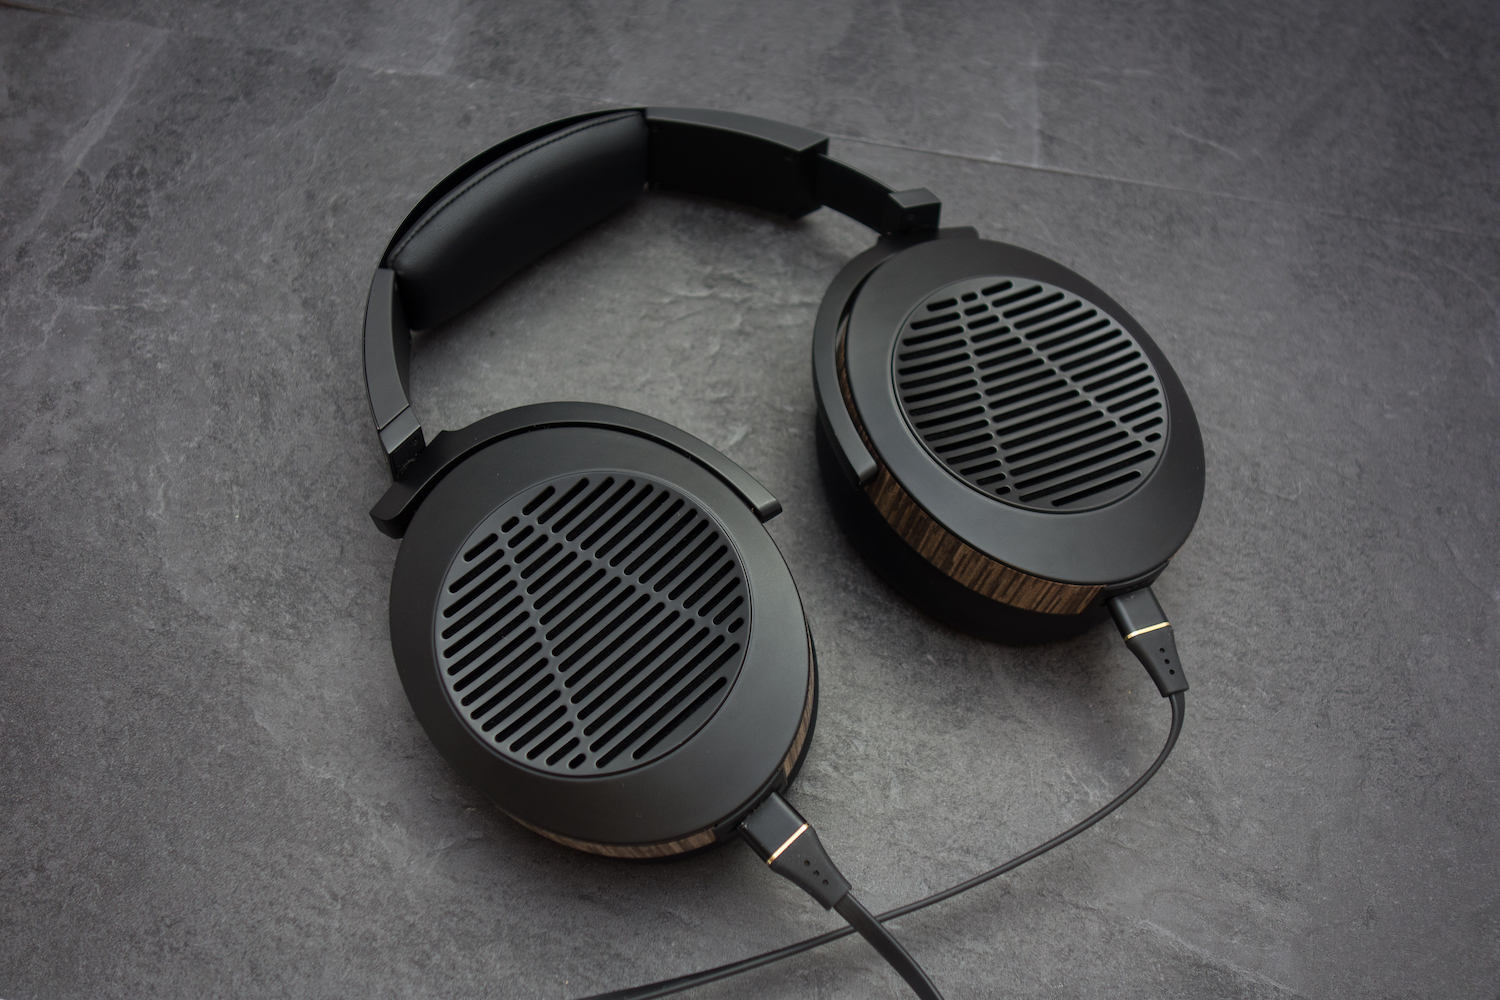 The earcups swivel a full 90 degrees to allow them to sit flat when not in use.